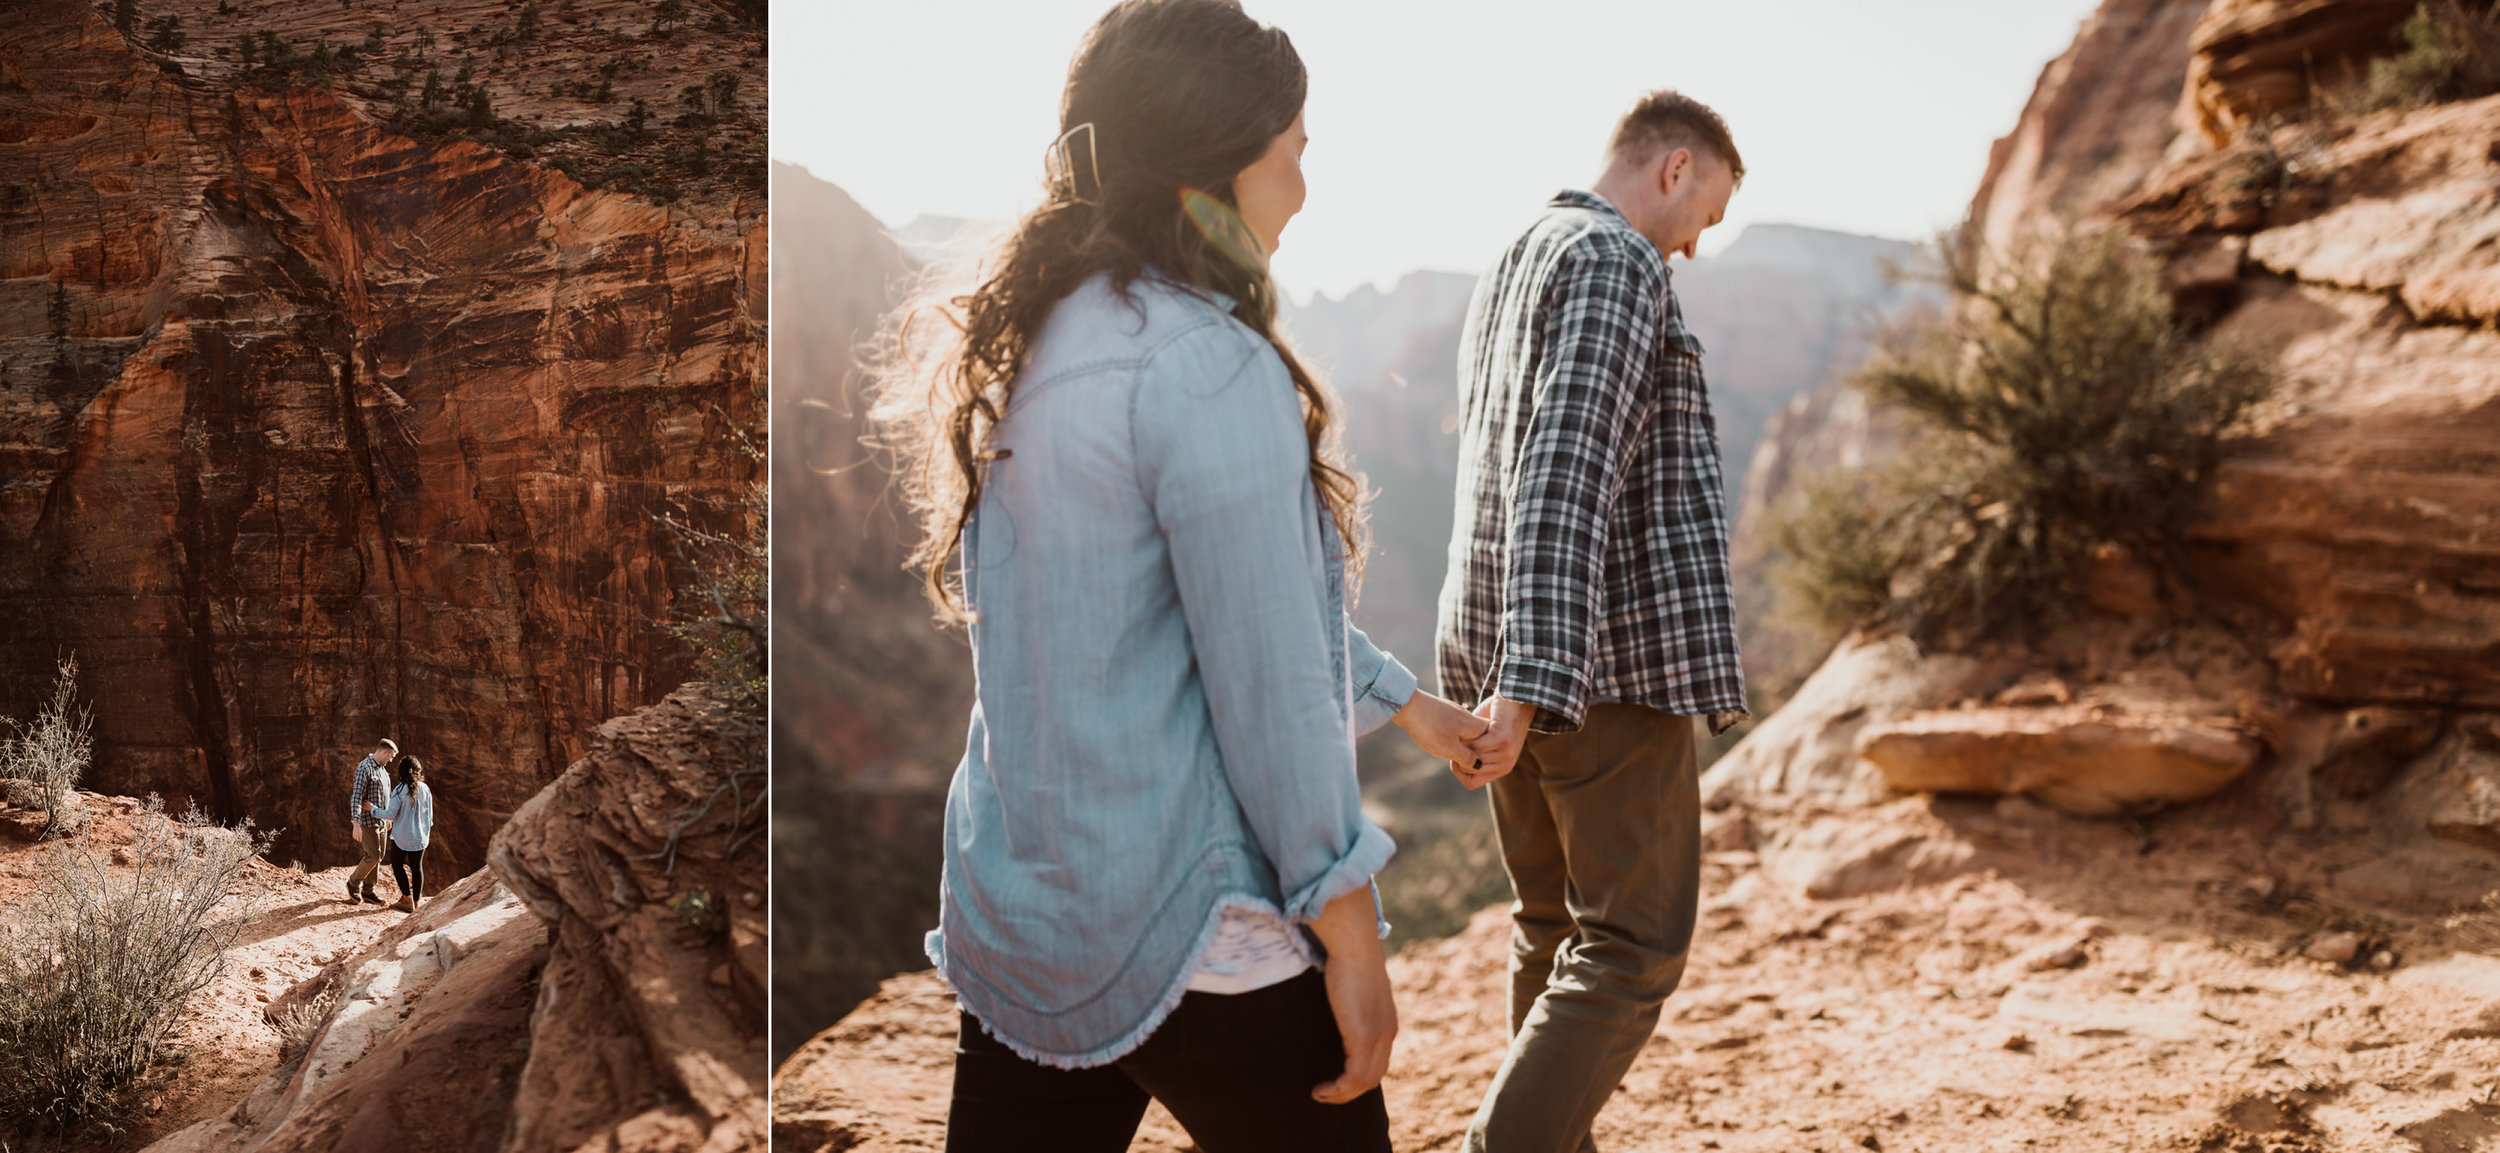 zion-national-park-engagements-53.jpg